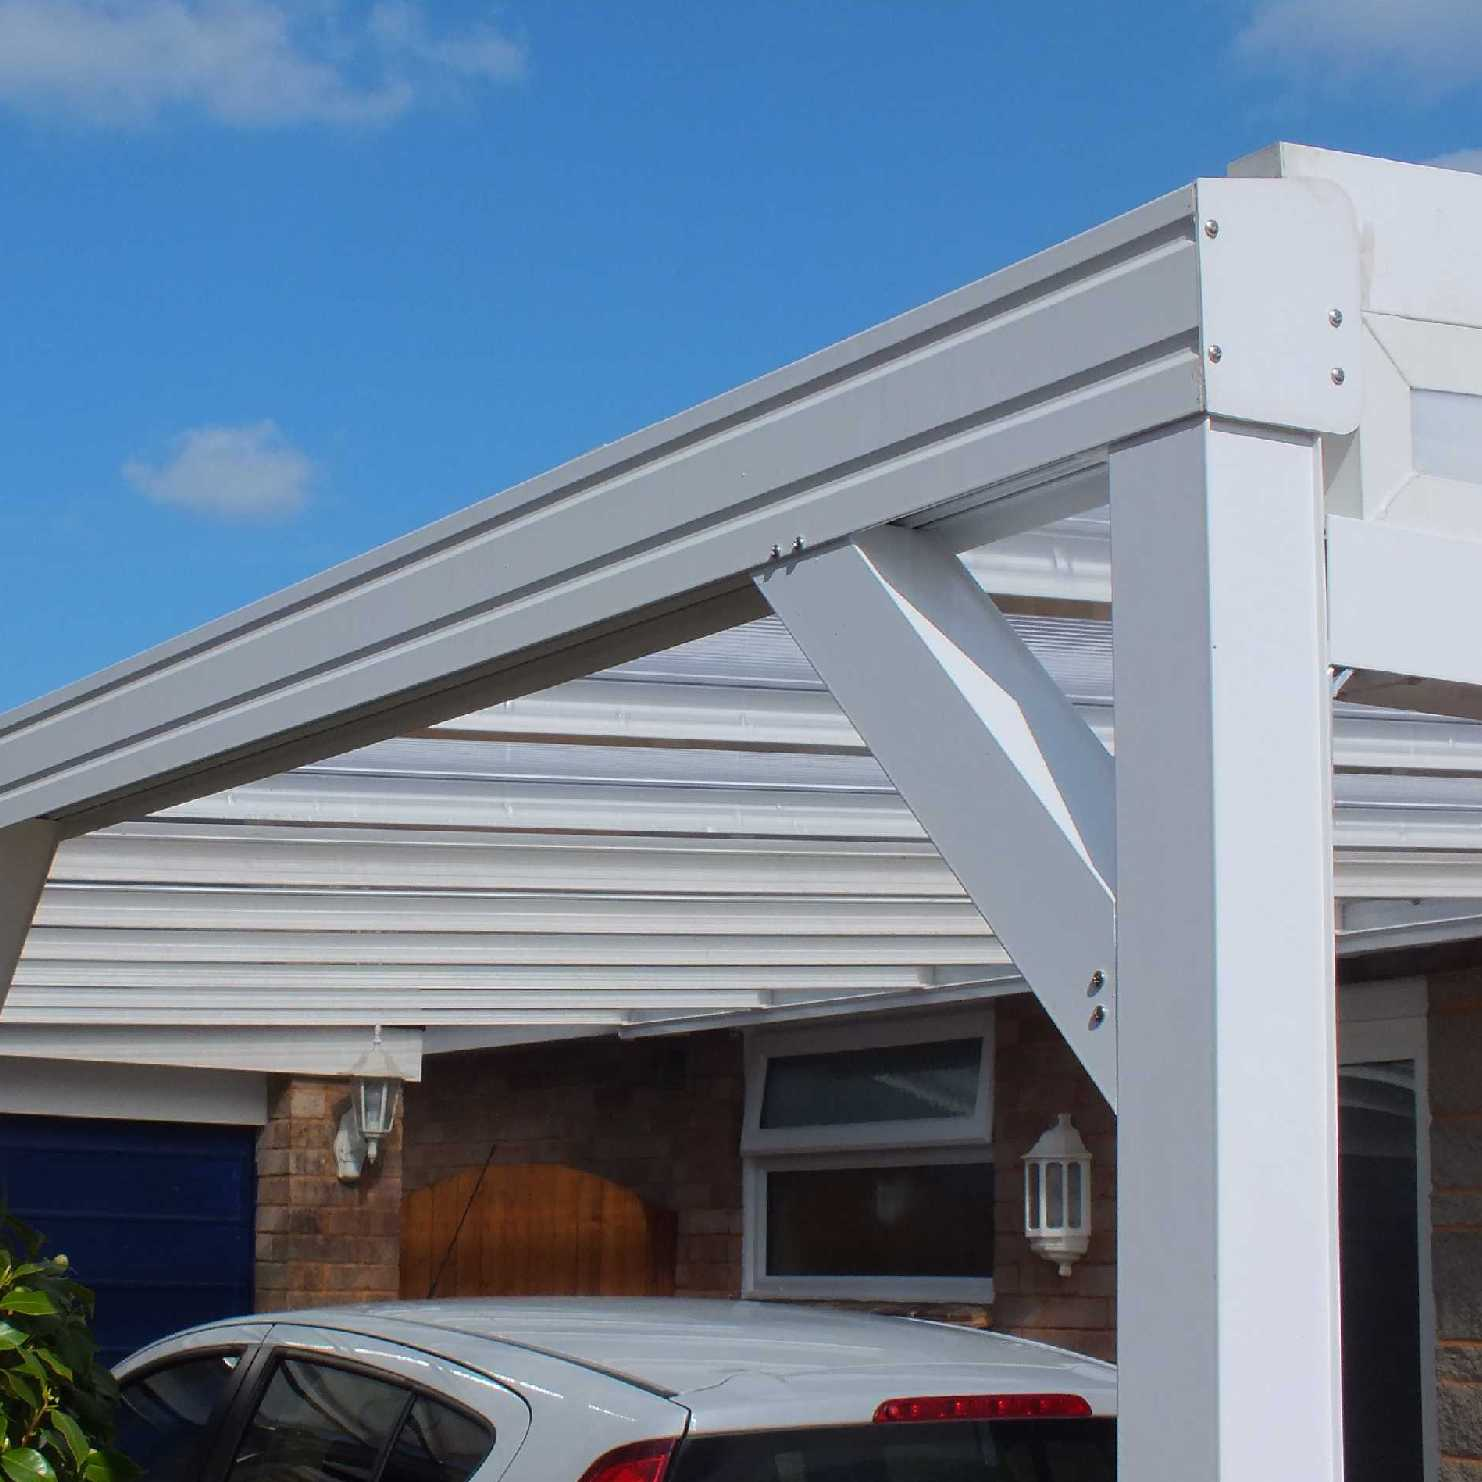 Great deals on Omega Smart Lean-To Canopy with 16mm Polycarbonate Glazing - 7.8m (W) x 4.0m (P), (4) Supporting Posts